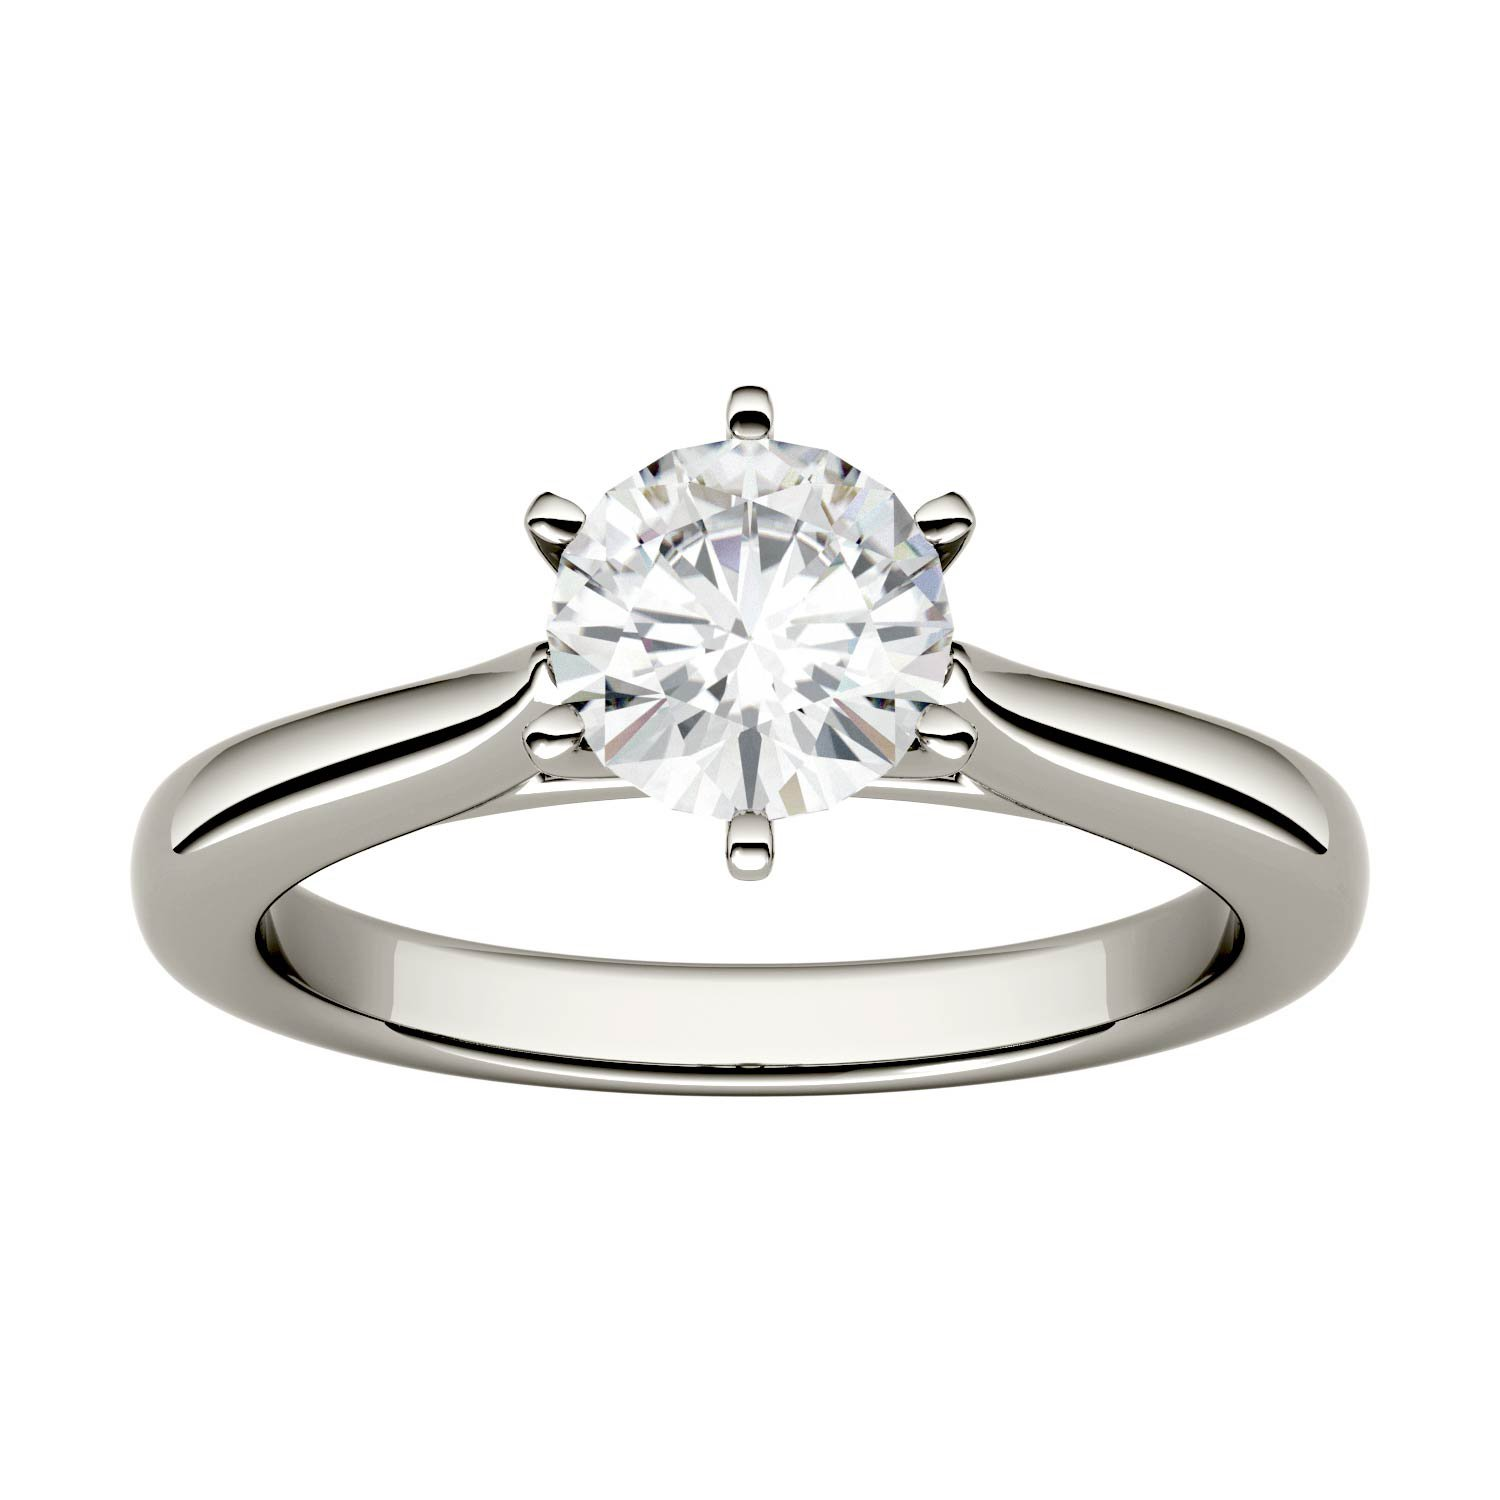 Forever One Round 6.5mm Moissanite Engagement Ring-size 8, 1.00ct DEW (D-E-F) By Charles & Colvard by Charles & Colvard